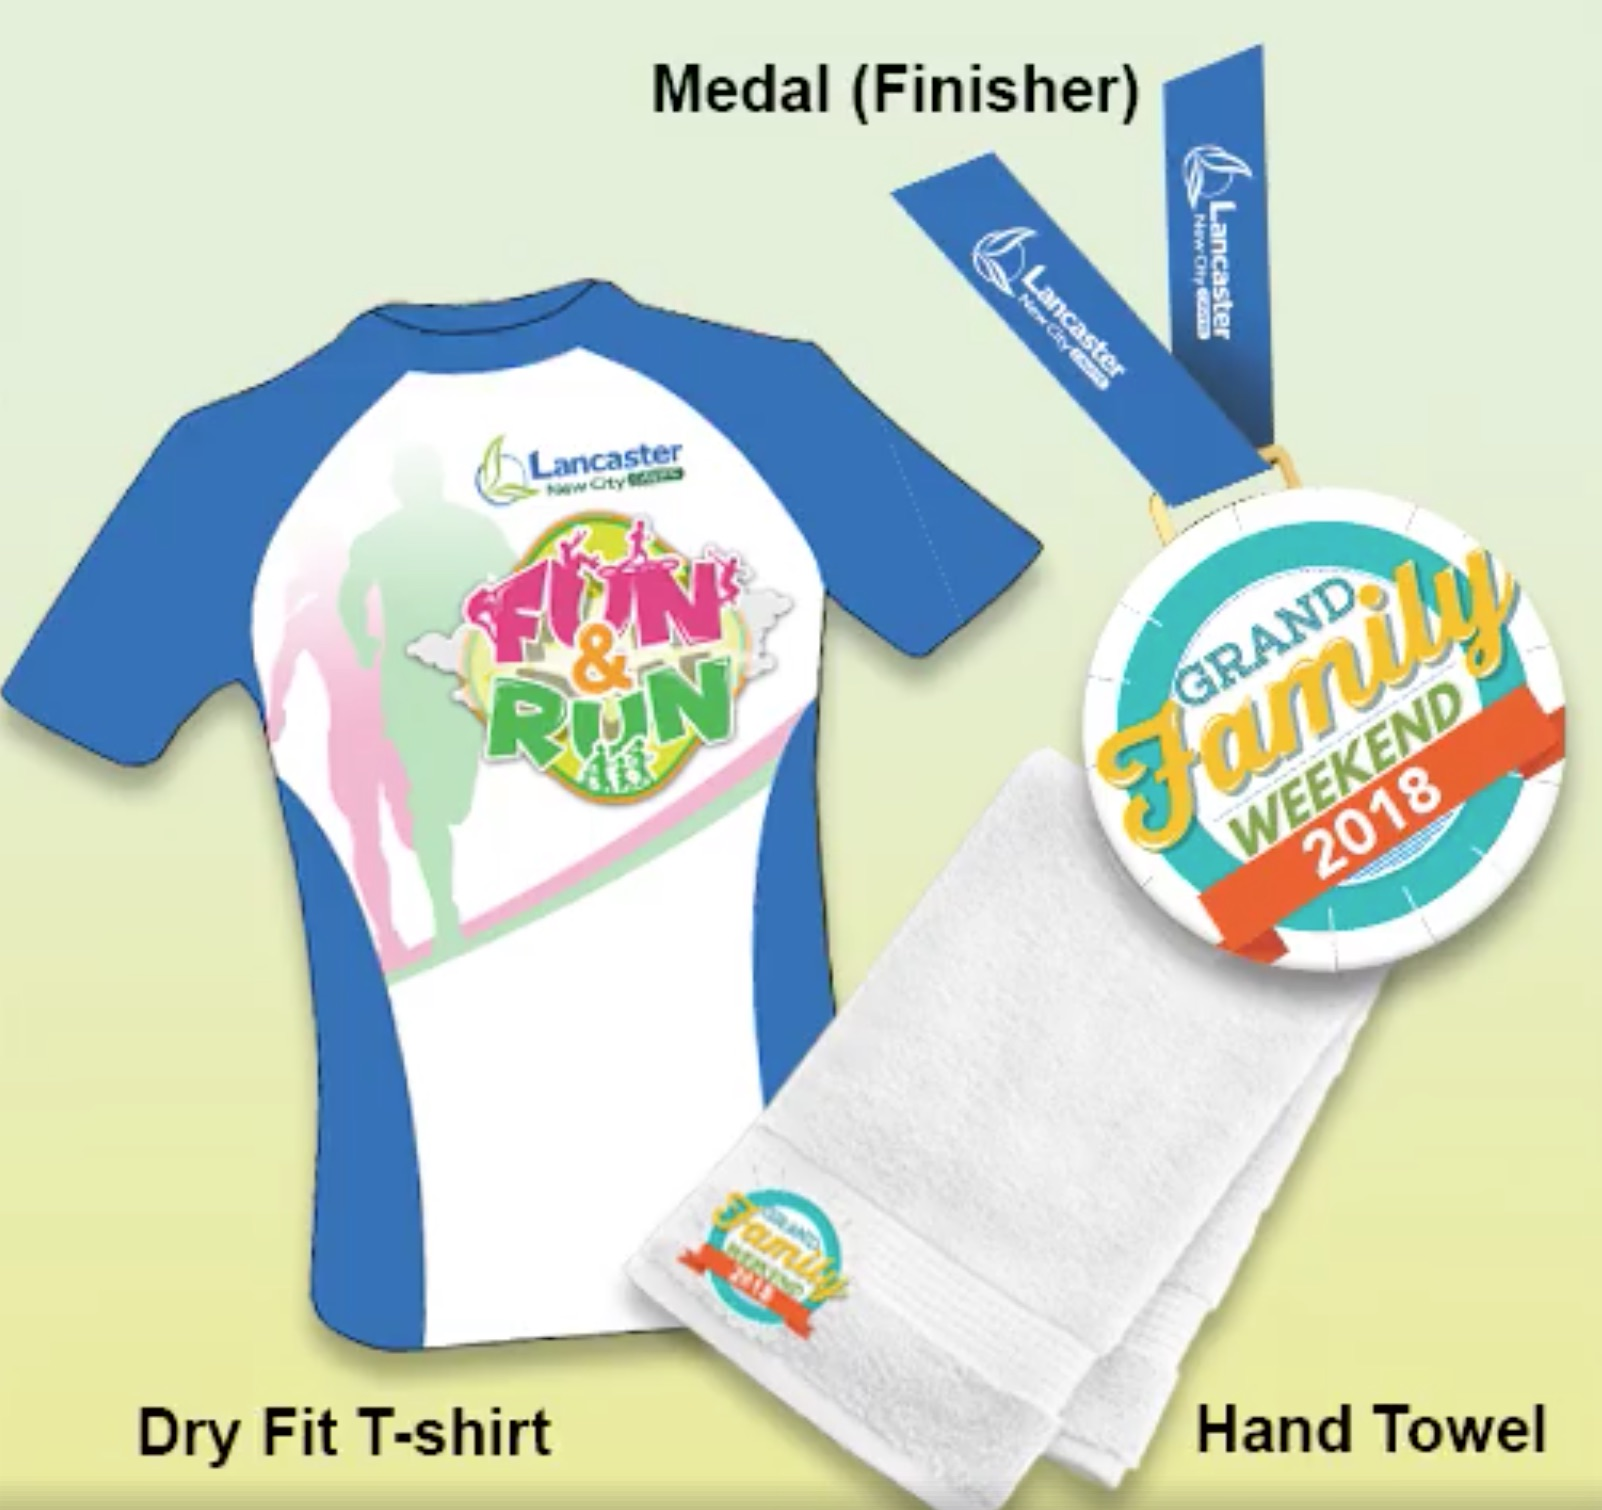 dri-fit race shirt, finisher medal and hand towel